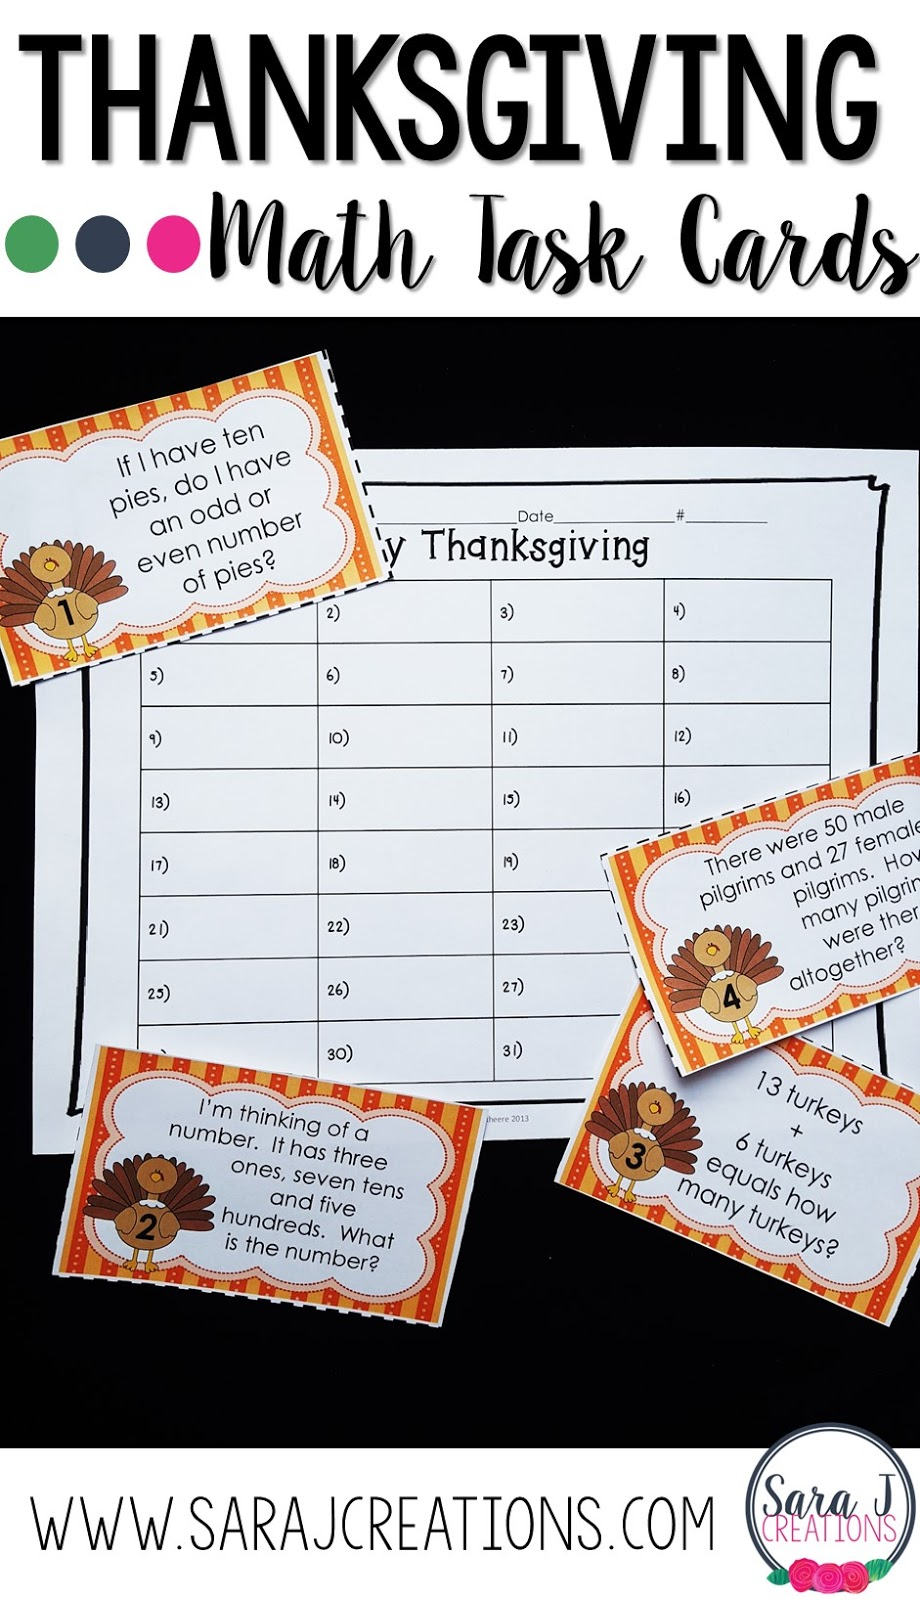 Thanksgiving themed printable math task cards a perfect for review in November.